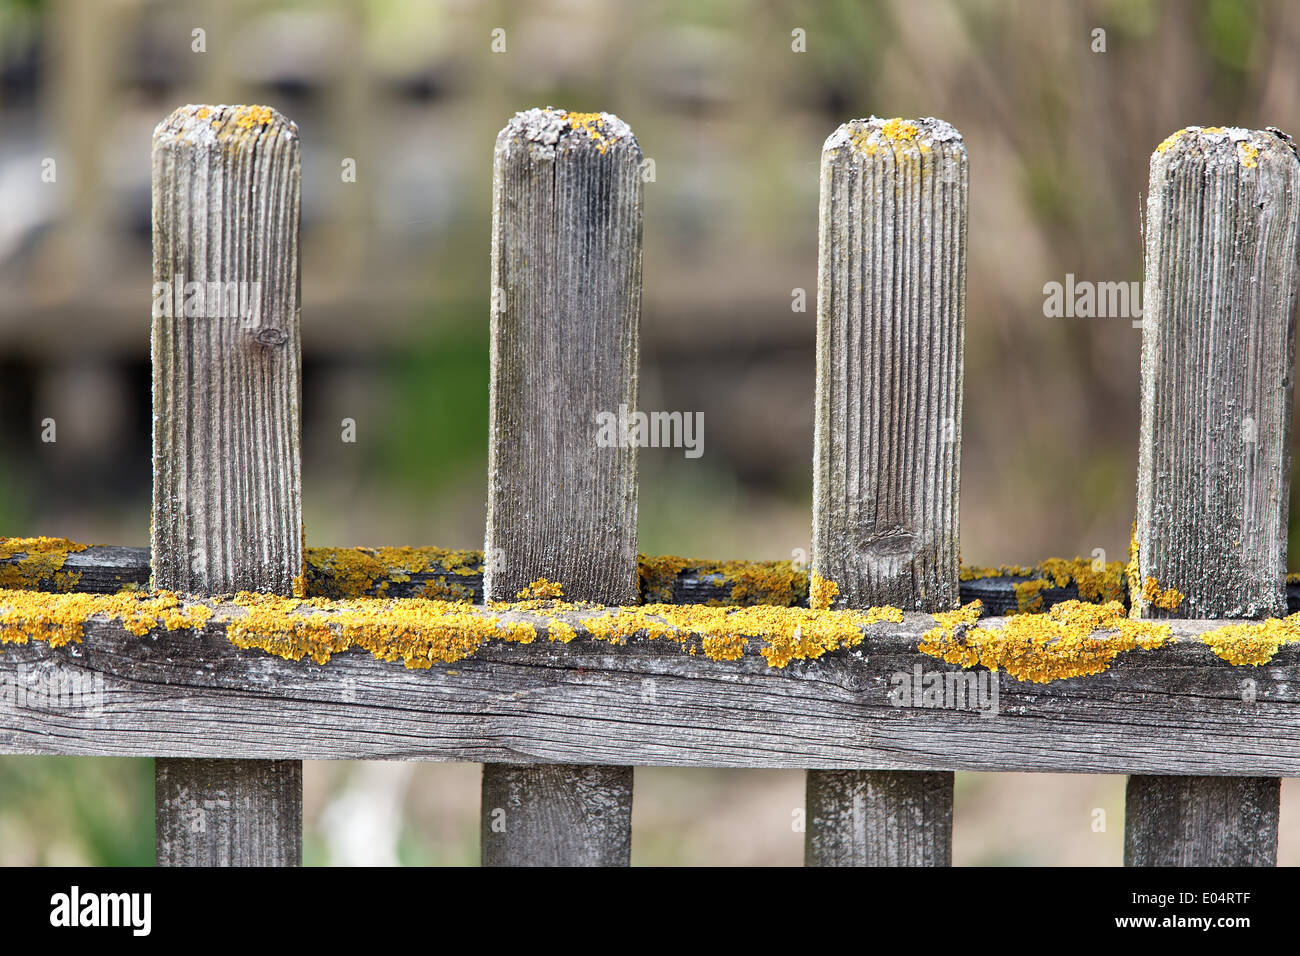 Wood guards fence detail with lichens covered and faded Holz